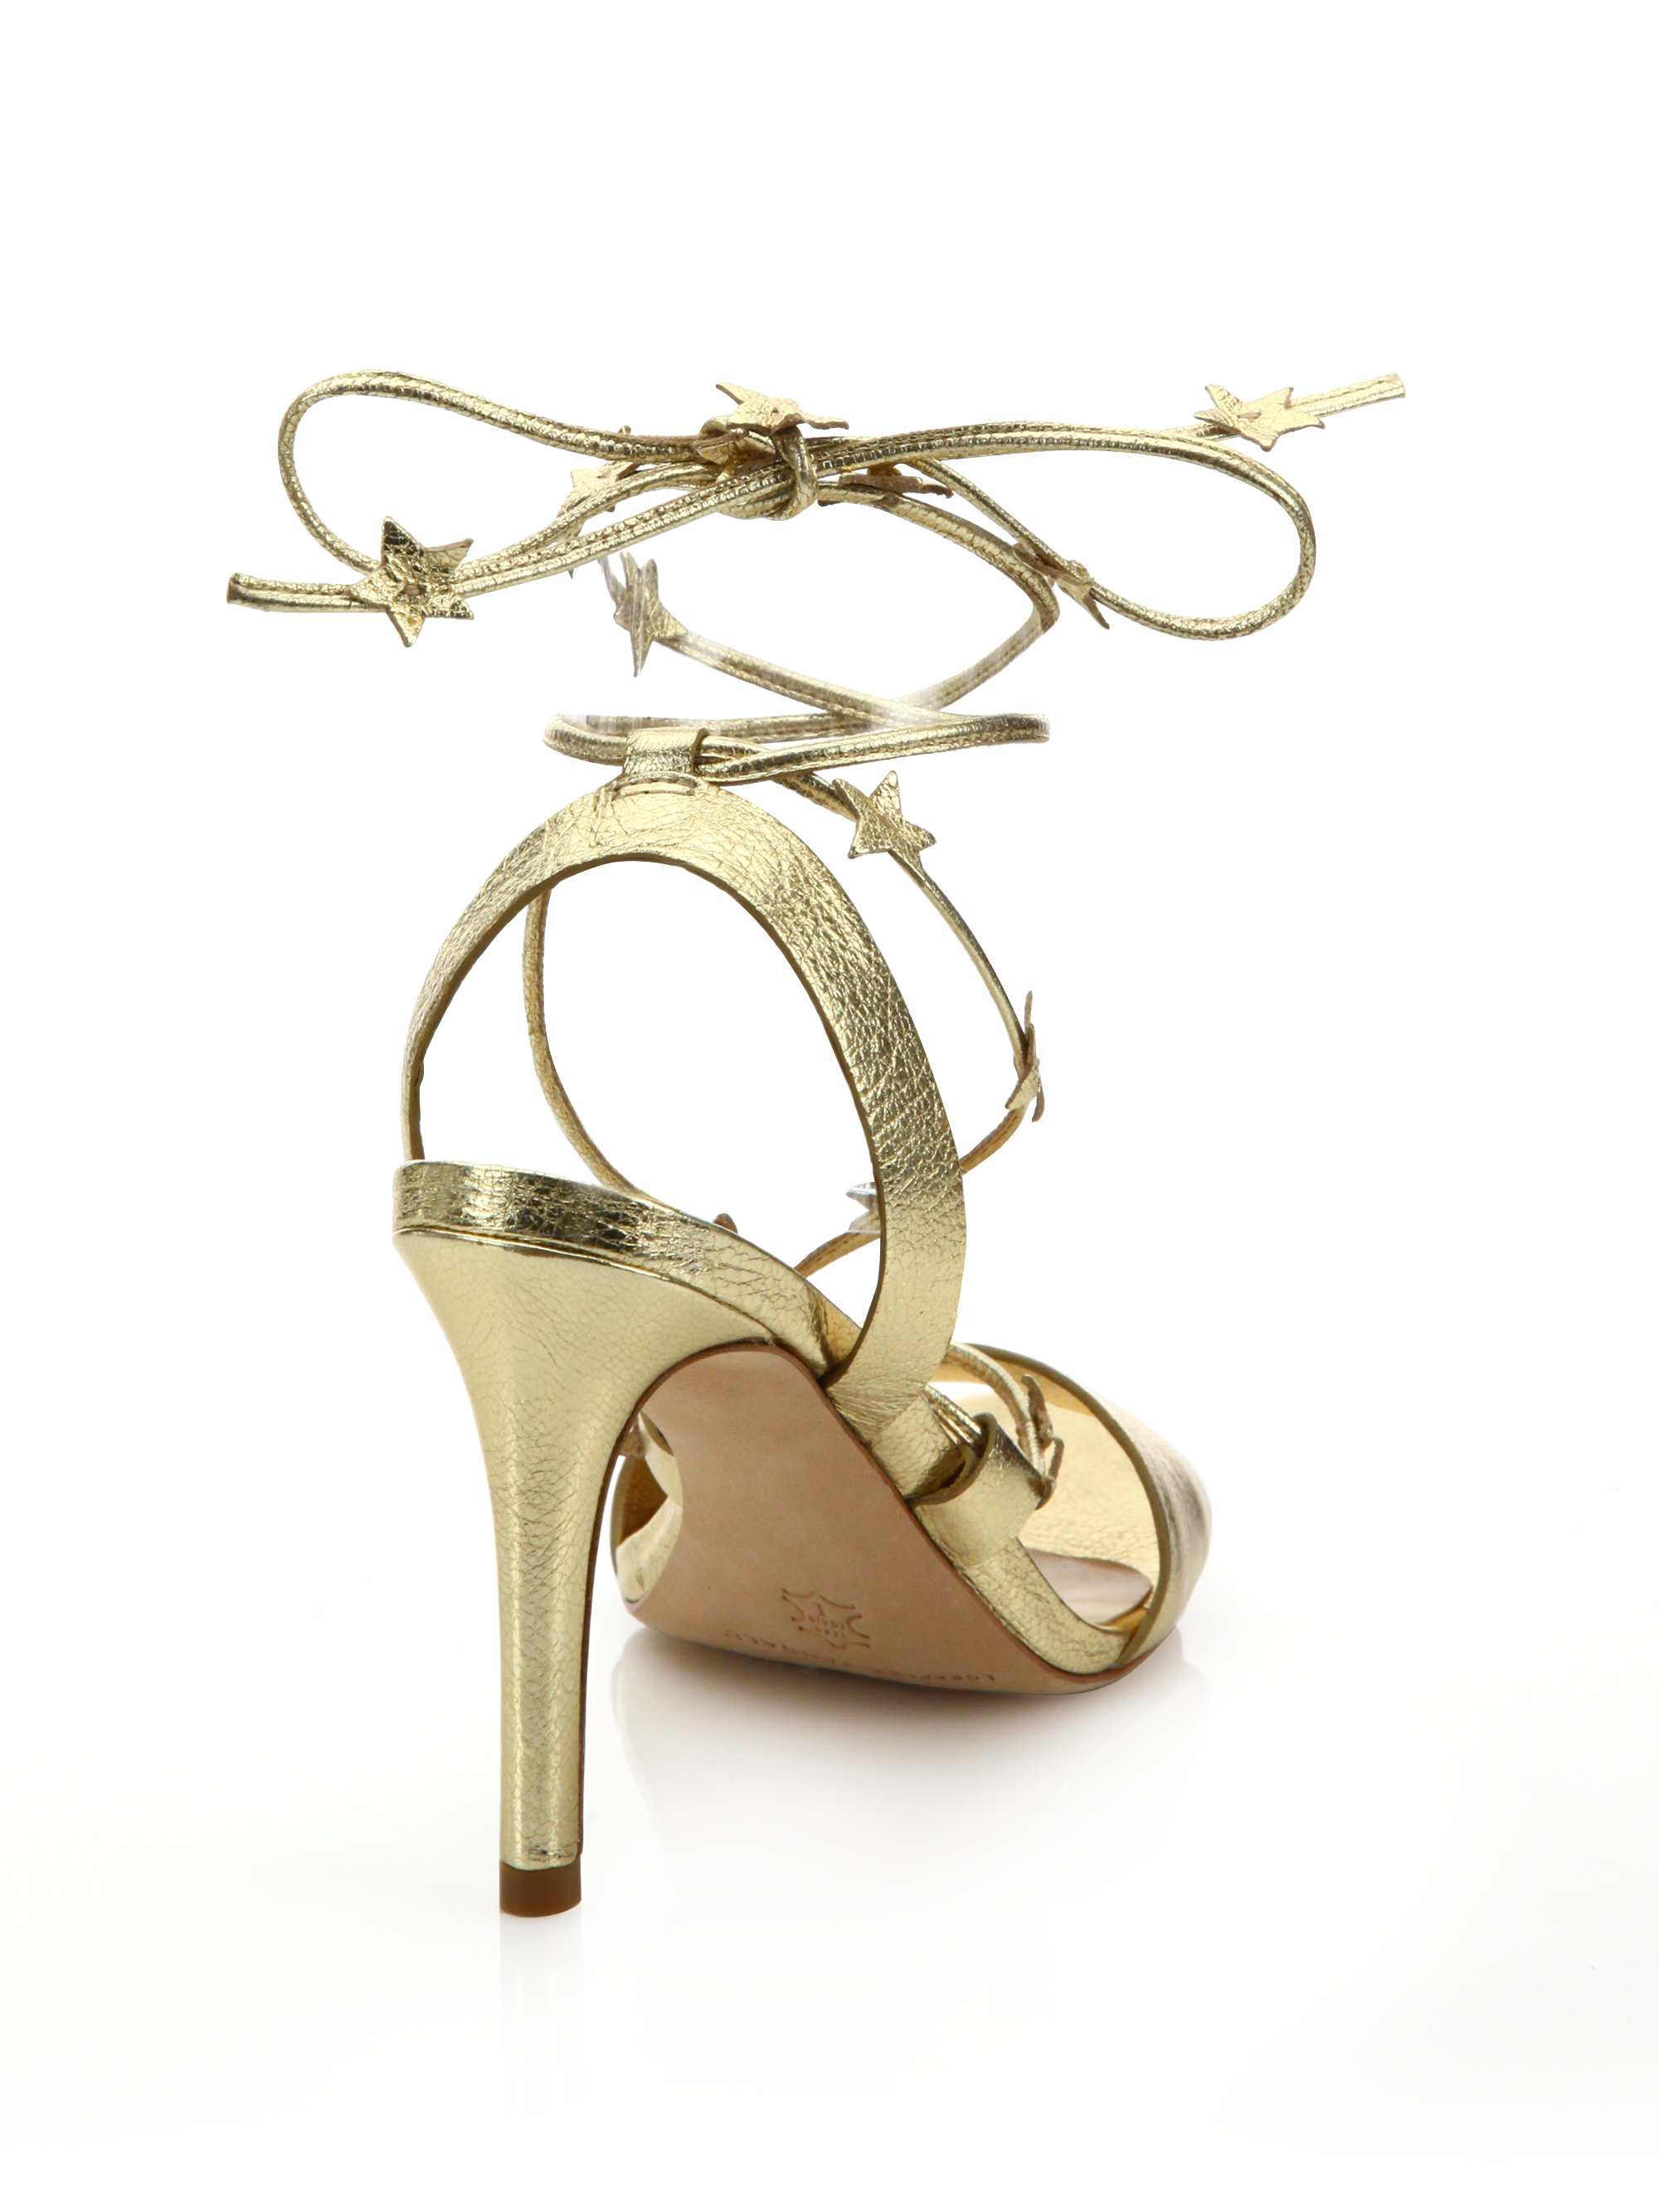 374a5929f76 Lyst - Loeffler Randall Arielle Star Metallic Leather Lace-up ...